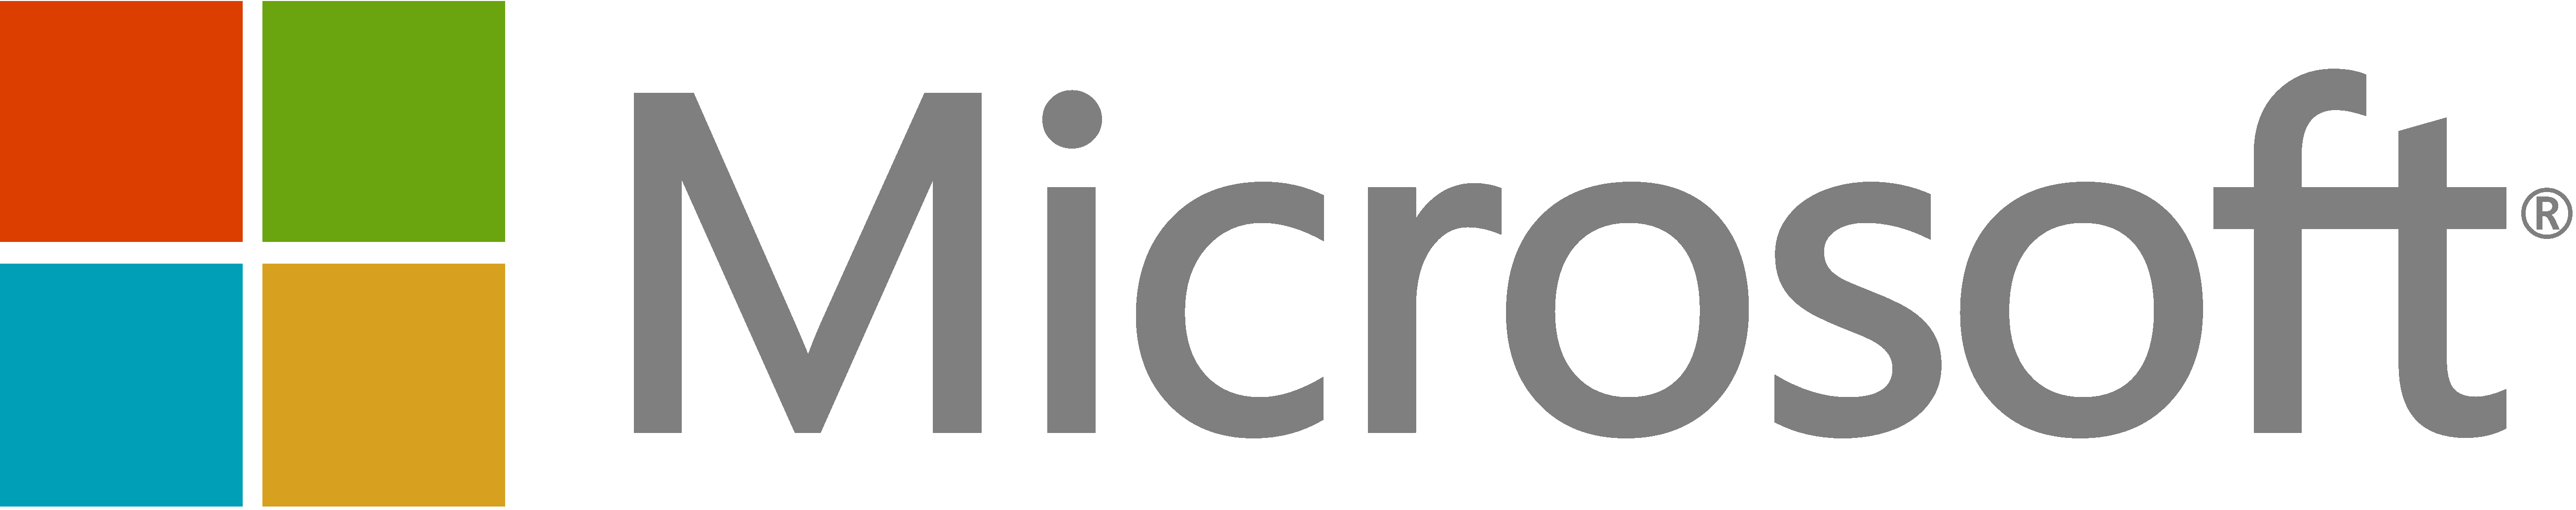 """Microsoft logo with 4 colored squares to the left of """"Microsoft""""."""